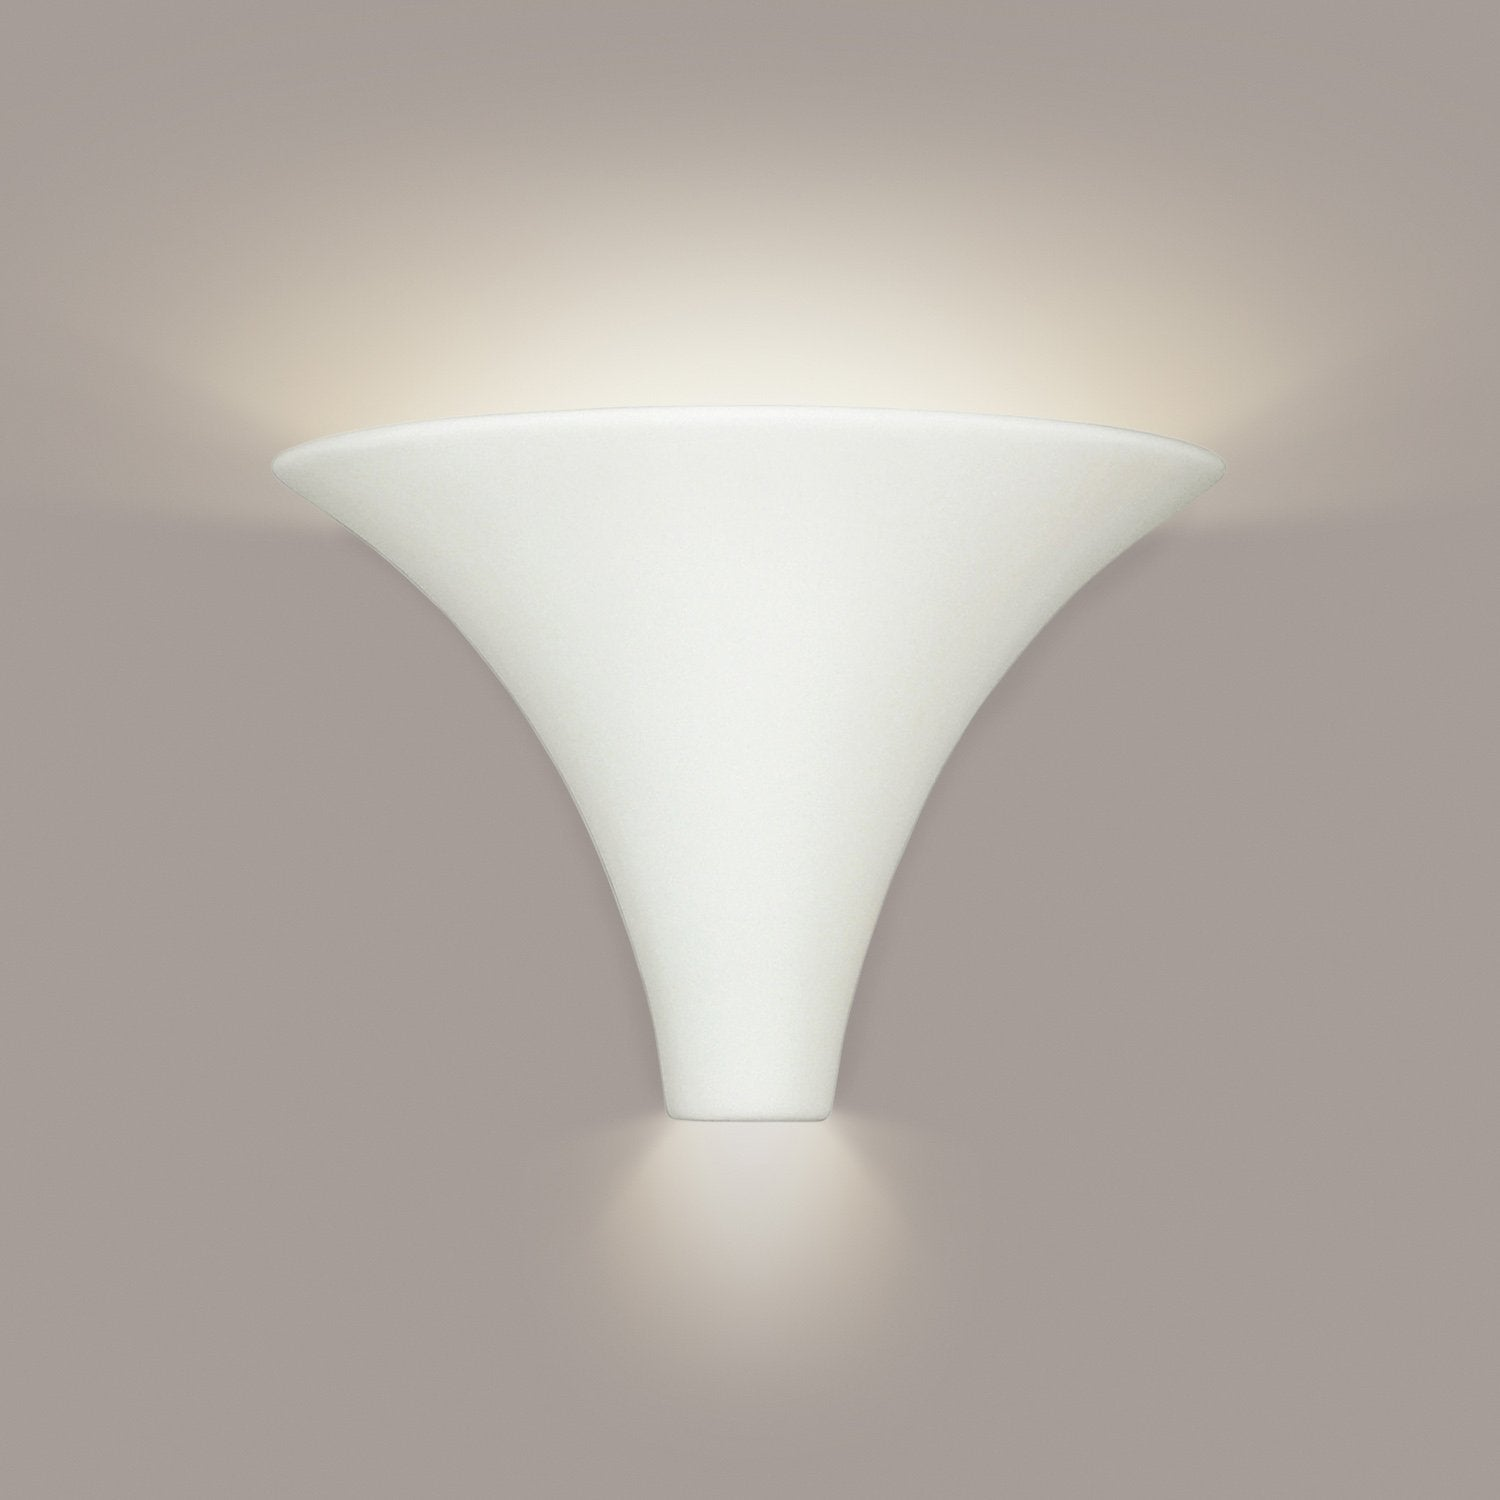 A19 501-CFL13-M16 Islands of Light Collection Madera Silver Satin Finish Wall Sconce from A19